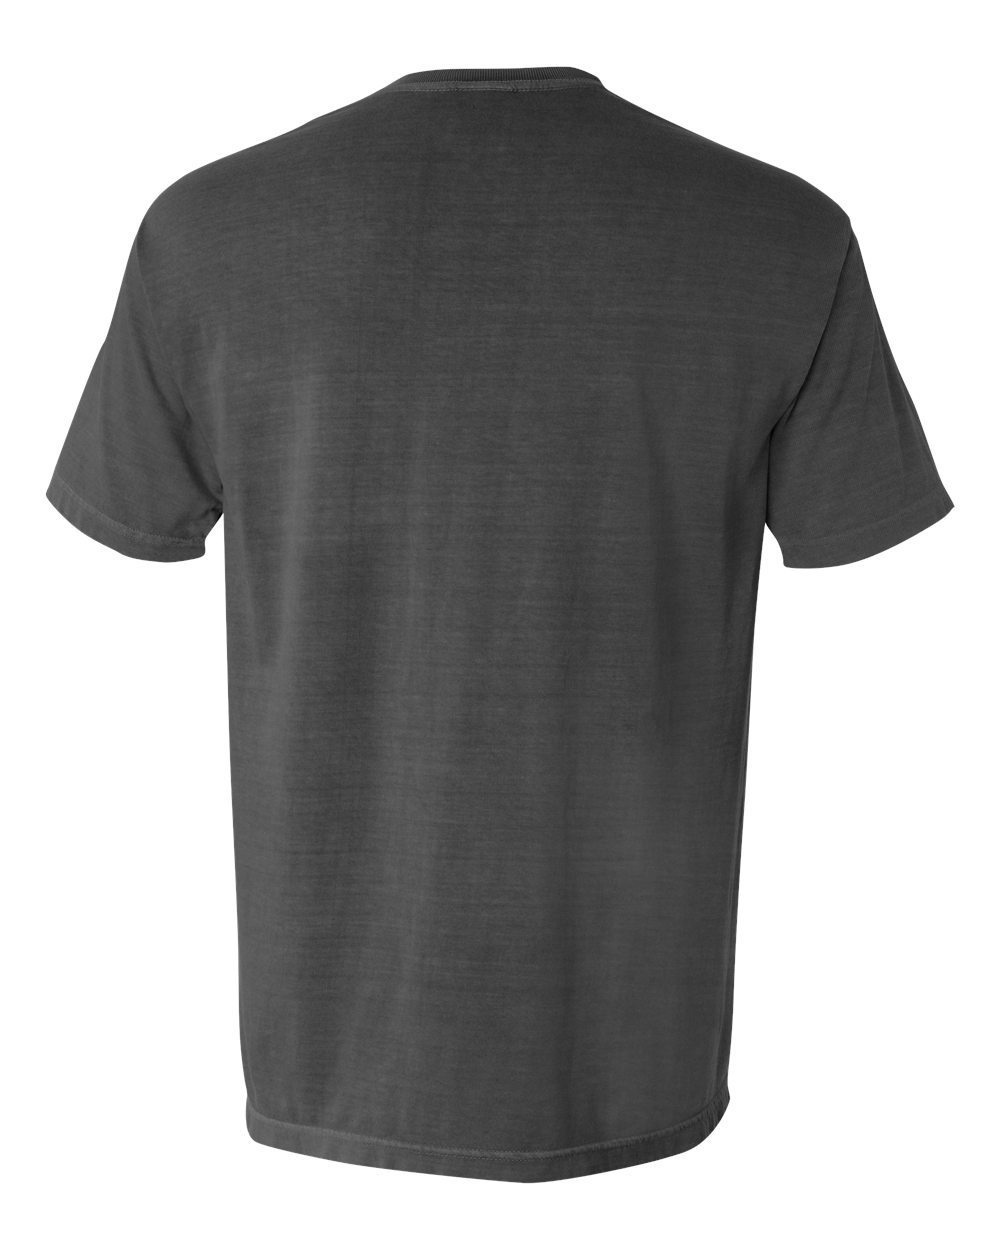 Comfort-Colors-Men-039-s-6-1-oz-Garment-Dyed-Pocket-T-Shirt-6030CC-S-3XL thumbnail 67